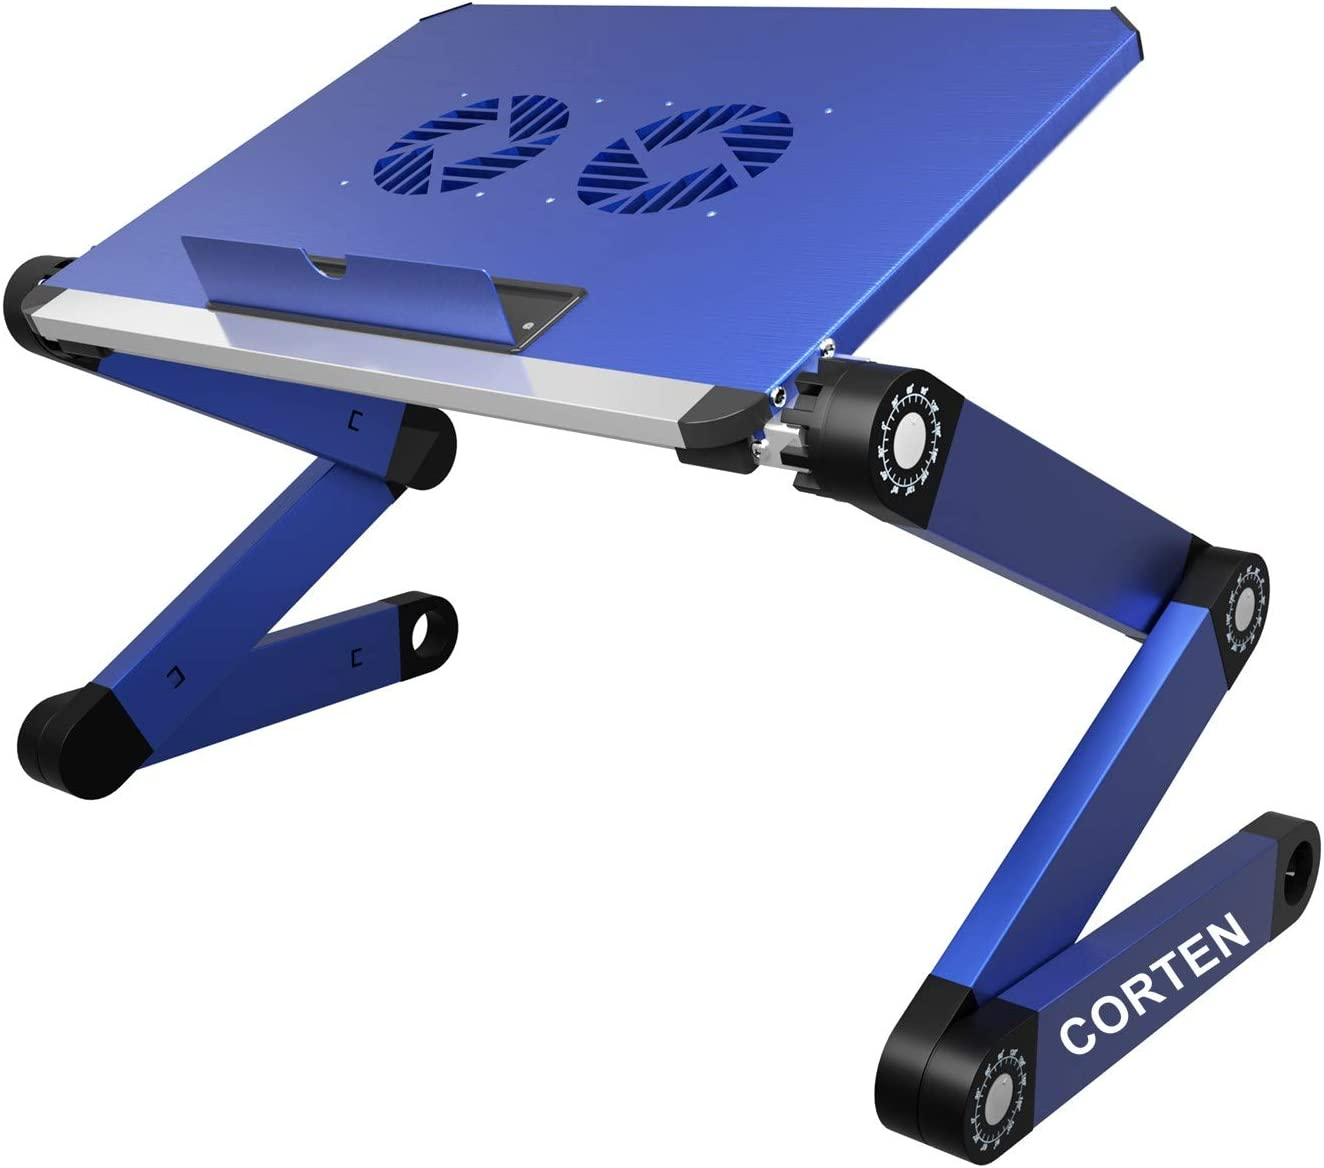 Ergonomic Portable Laptop Stand Table Desk Foldable Lap Tray for Bed Sofa Fully Adjustable Height and Angle Laptop Riser with USB Fans for Work from Home or Travel (Blue)